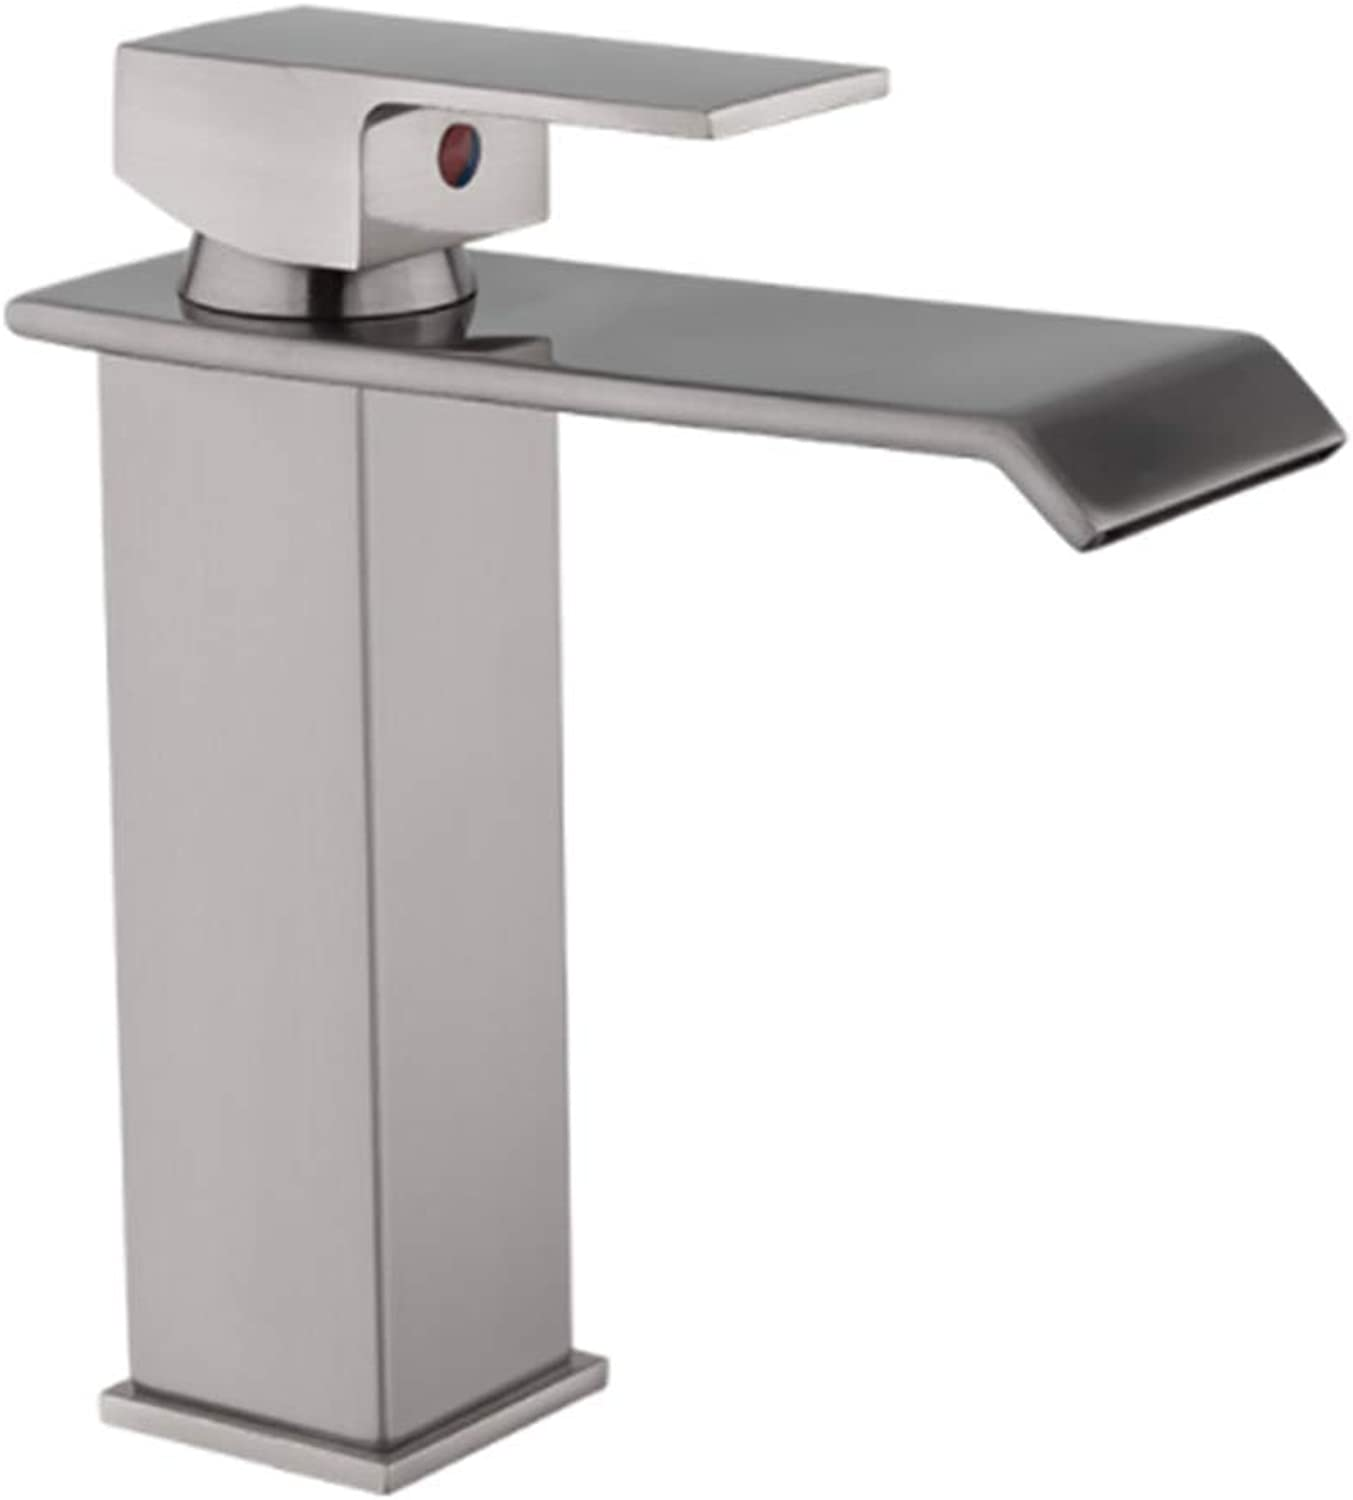 Taps Kitchen Basin Bathroom Washroombathroom Basin Faucet Sell Well Waterfall Chrome Single Handle Single Hole Mixer Sink Tap Deck Mounted Square Taps